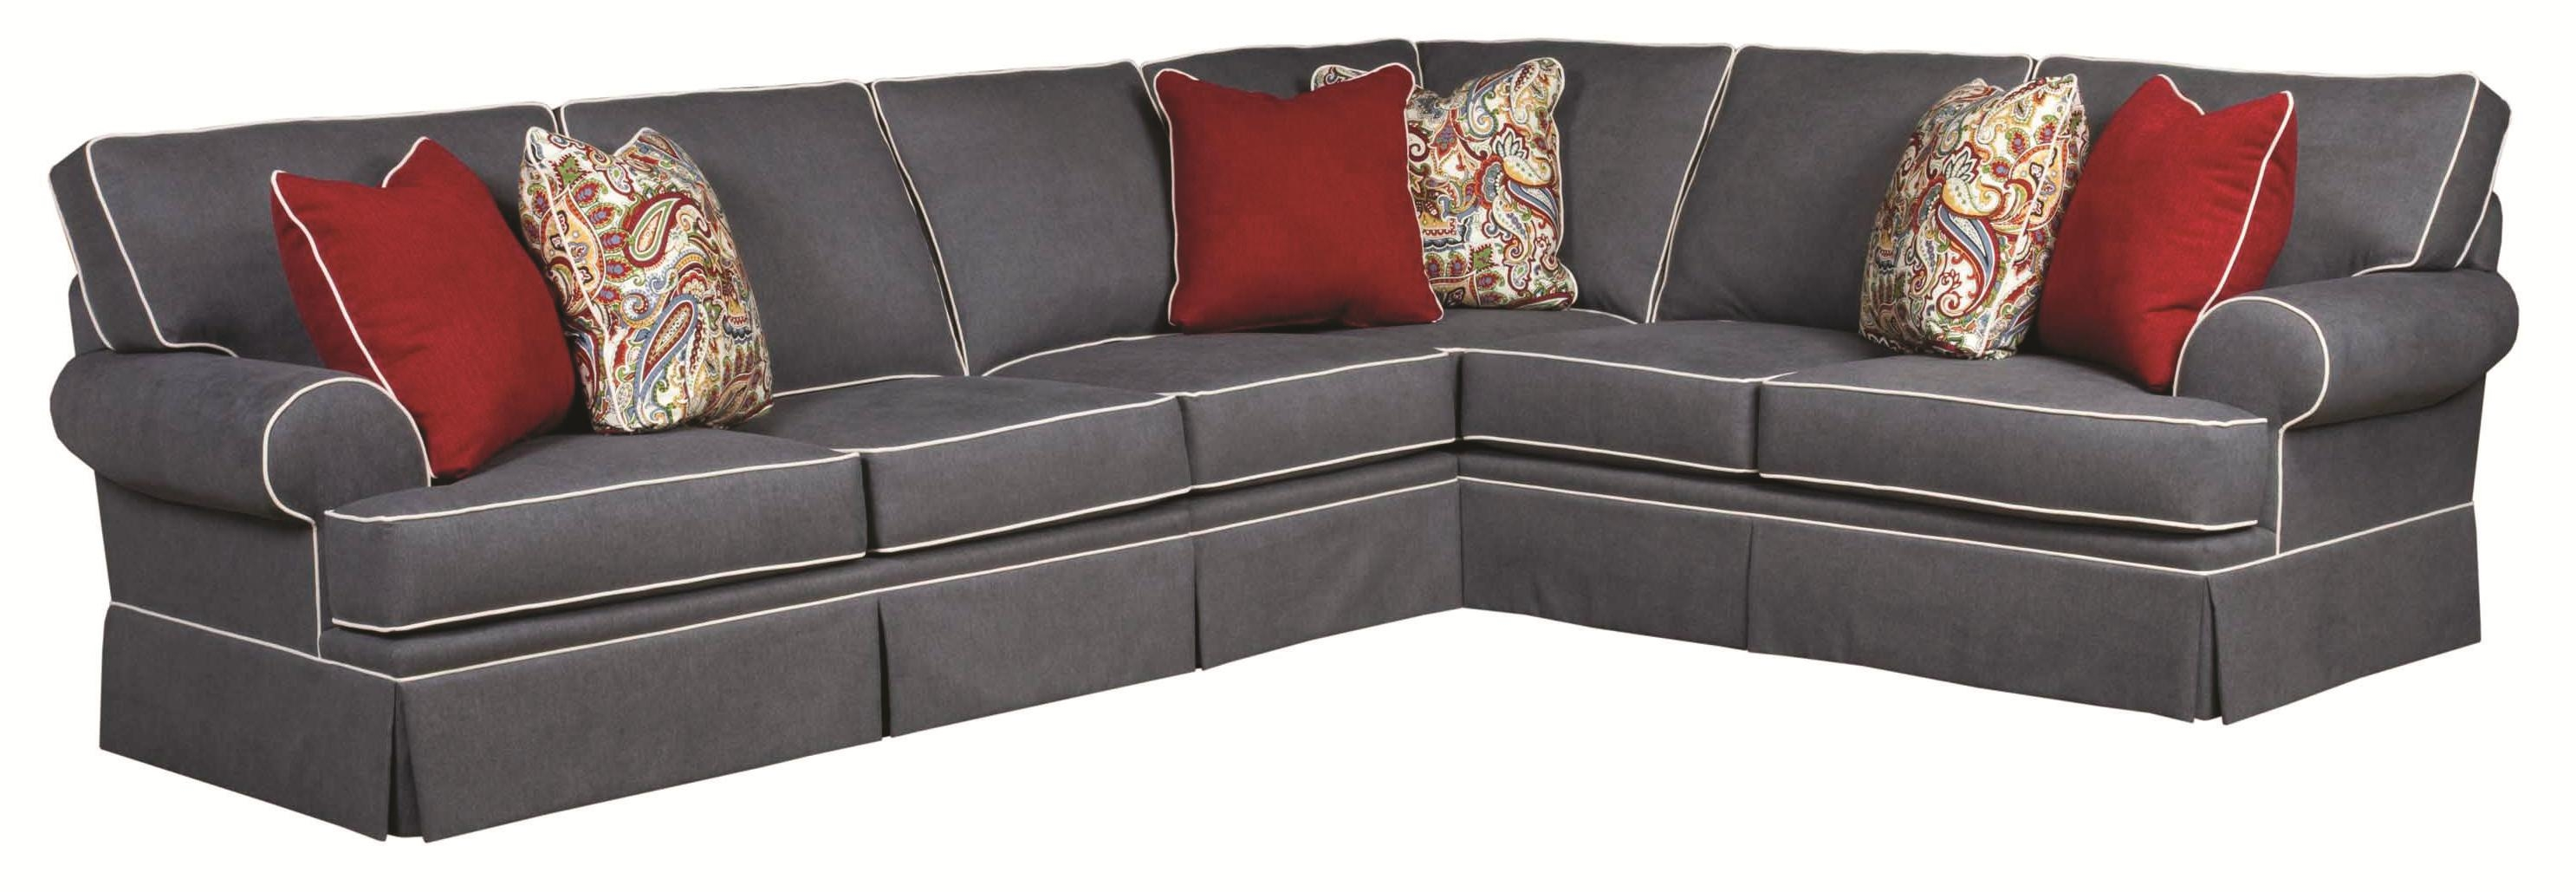 Broyhill Furniture Emily Traditional 3 Piece Sectional Sofa With Pertaining To Broyhill Sectional Sofas (Image 1 of 15)